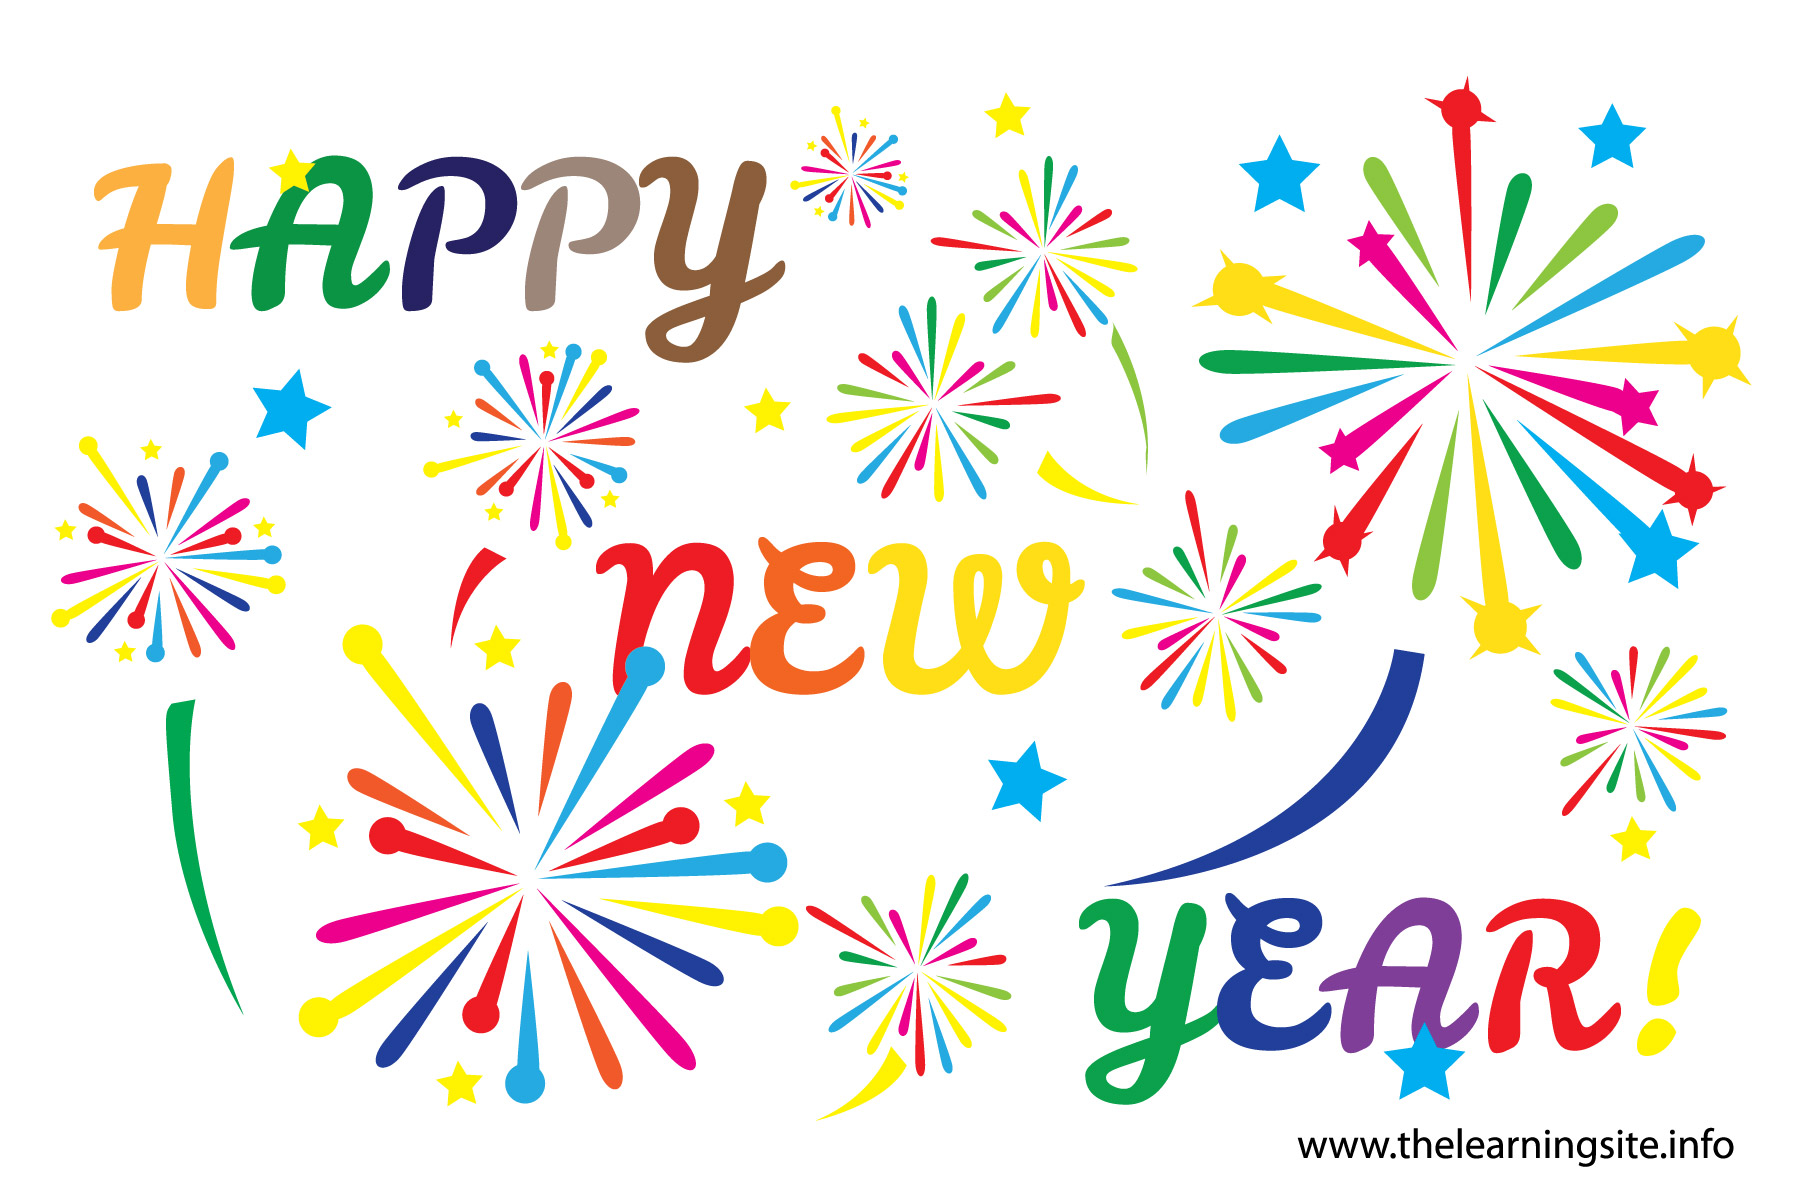 Happy New Year Clipart - .-Happy New Year Clipart - .-11